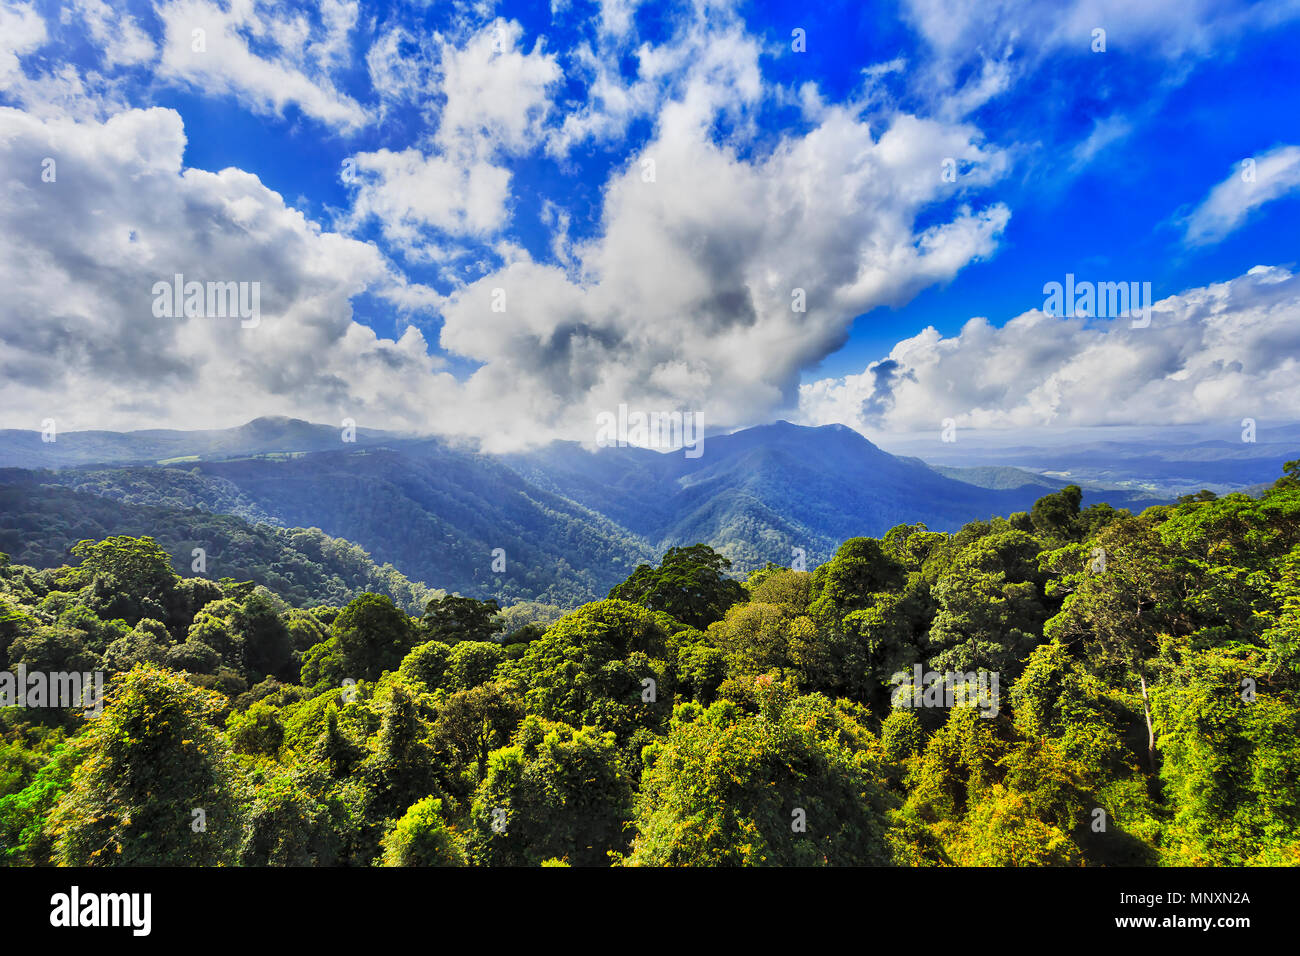 Lush green canopy of gondwana rainforest in DOrrigo national park as seen from main lookout towards distant mountain under blue bright sky. Stock Photo